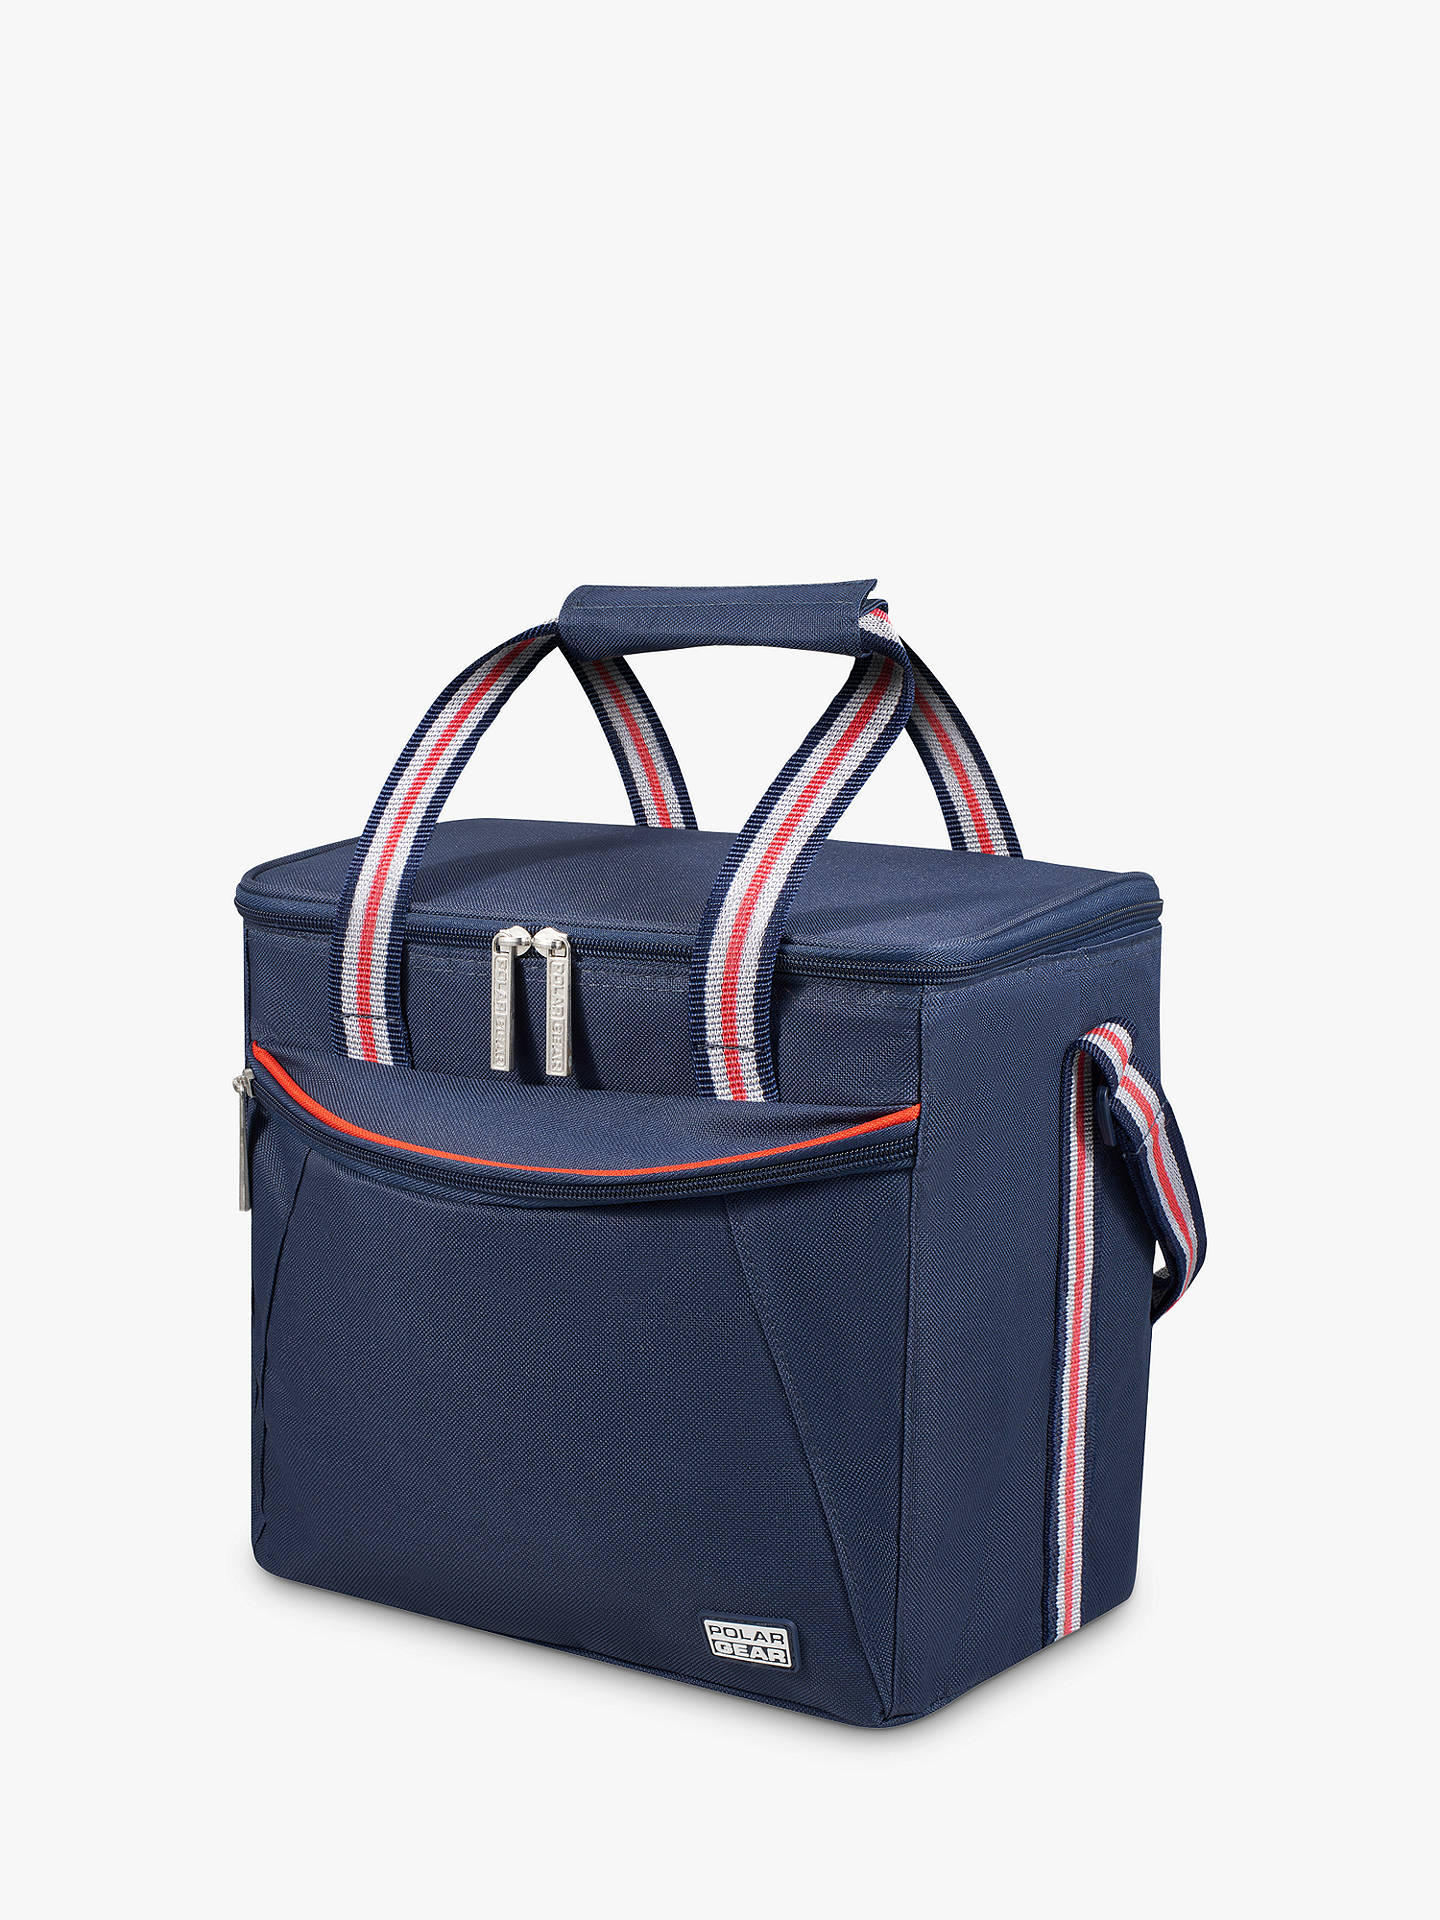 BuyPolar Gear Medium Cooler Bag, 16L Online at johnlewis.com